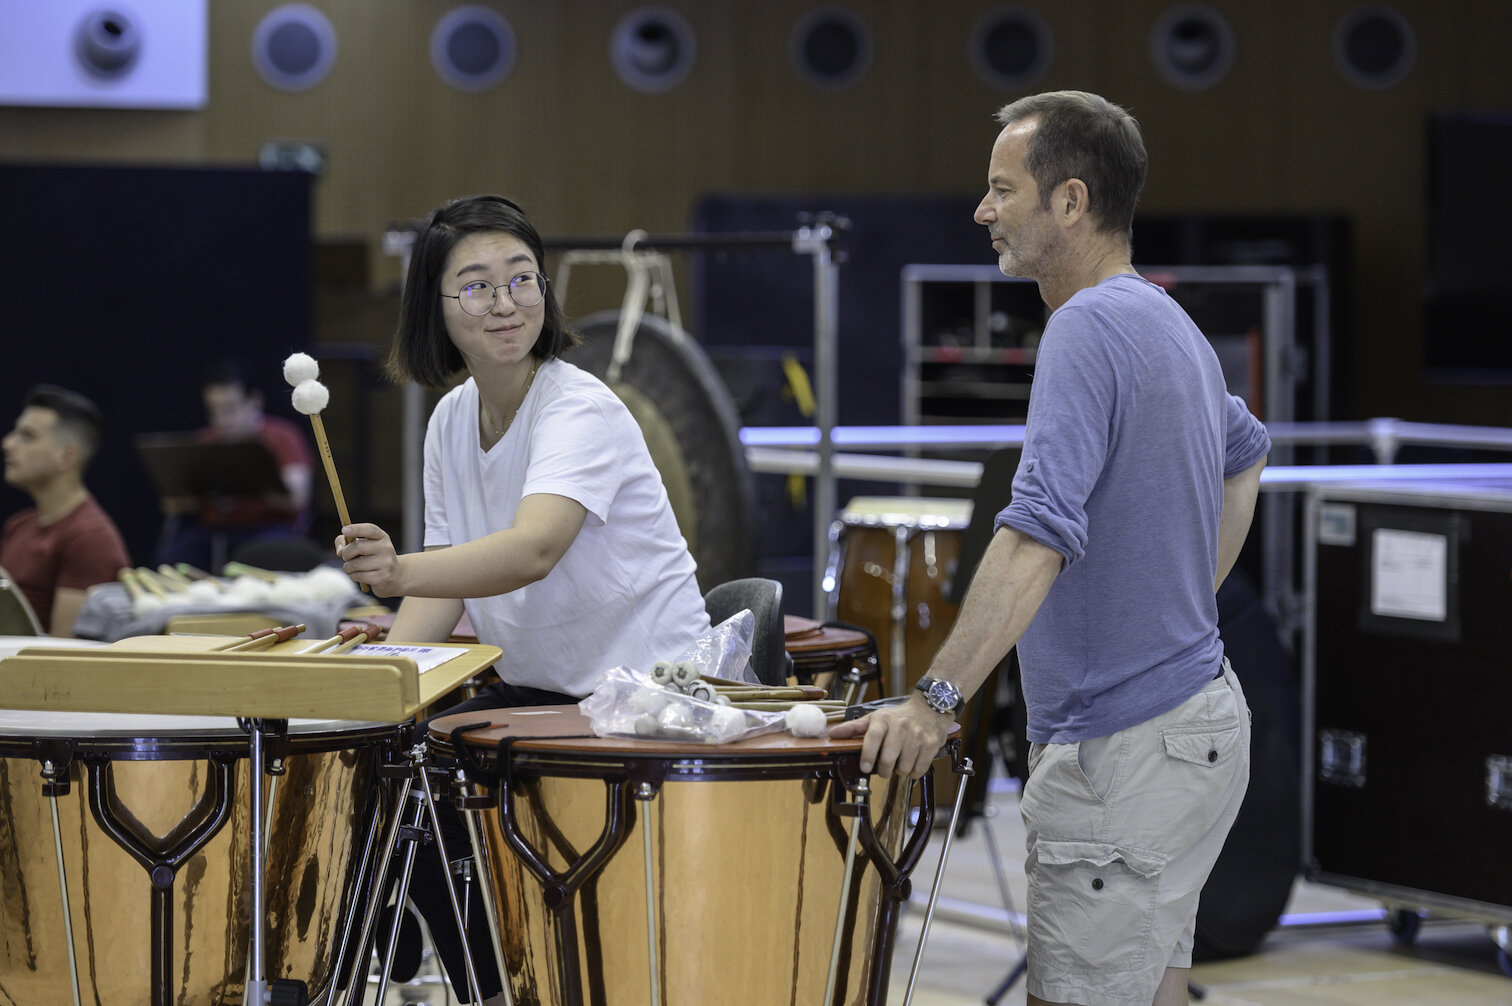 At El Seminario in Spain, Mahler Chamber Orchestra timpanist Martin Piechotta works with Dudamel Foundation Artist Eunji Park, August 2019. Photo by May Zircus.